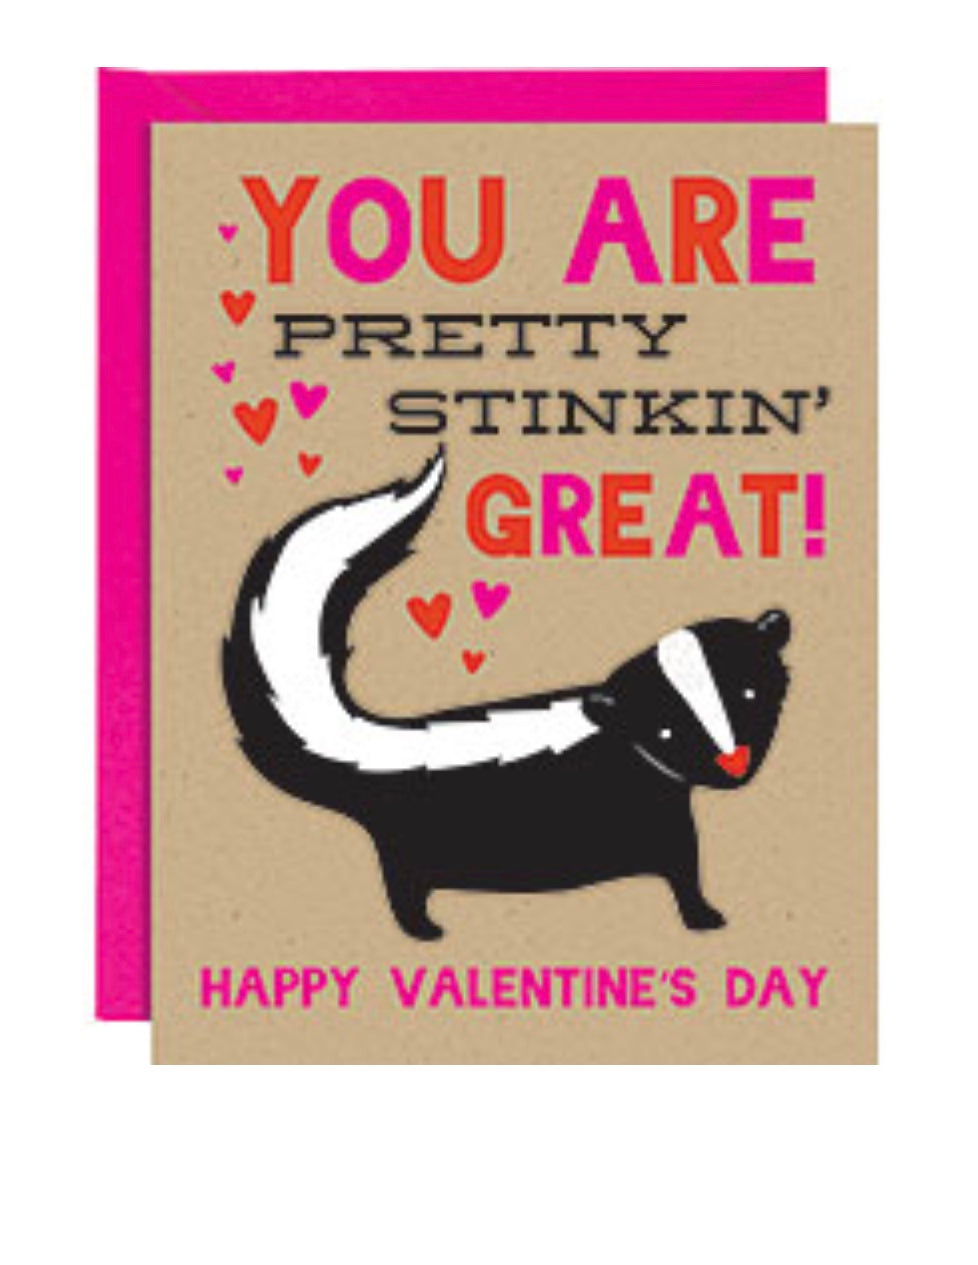 """You are pretty stinkin' great!"" Valentine's Day card with skunk"